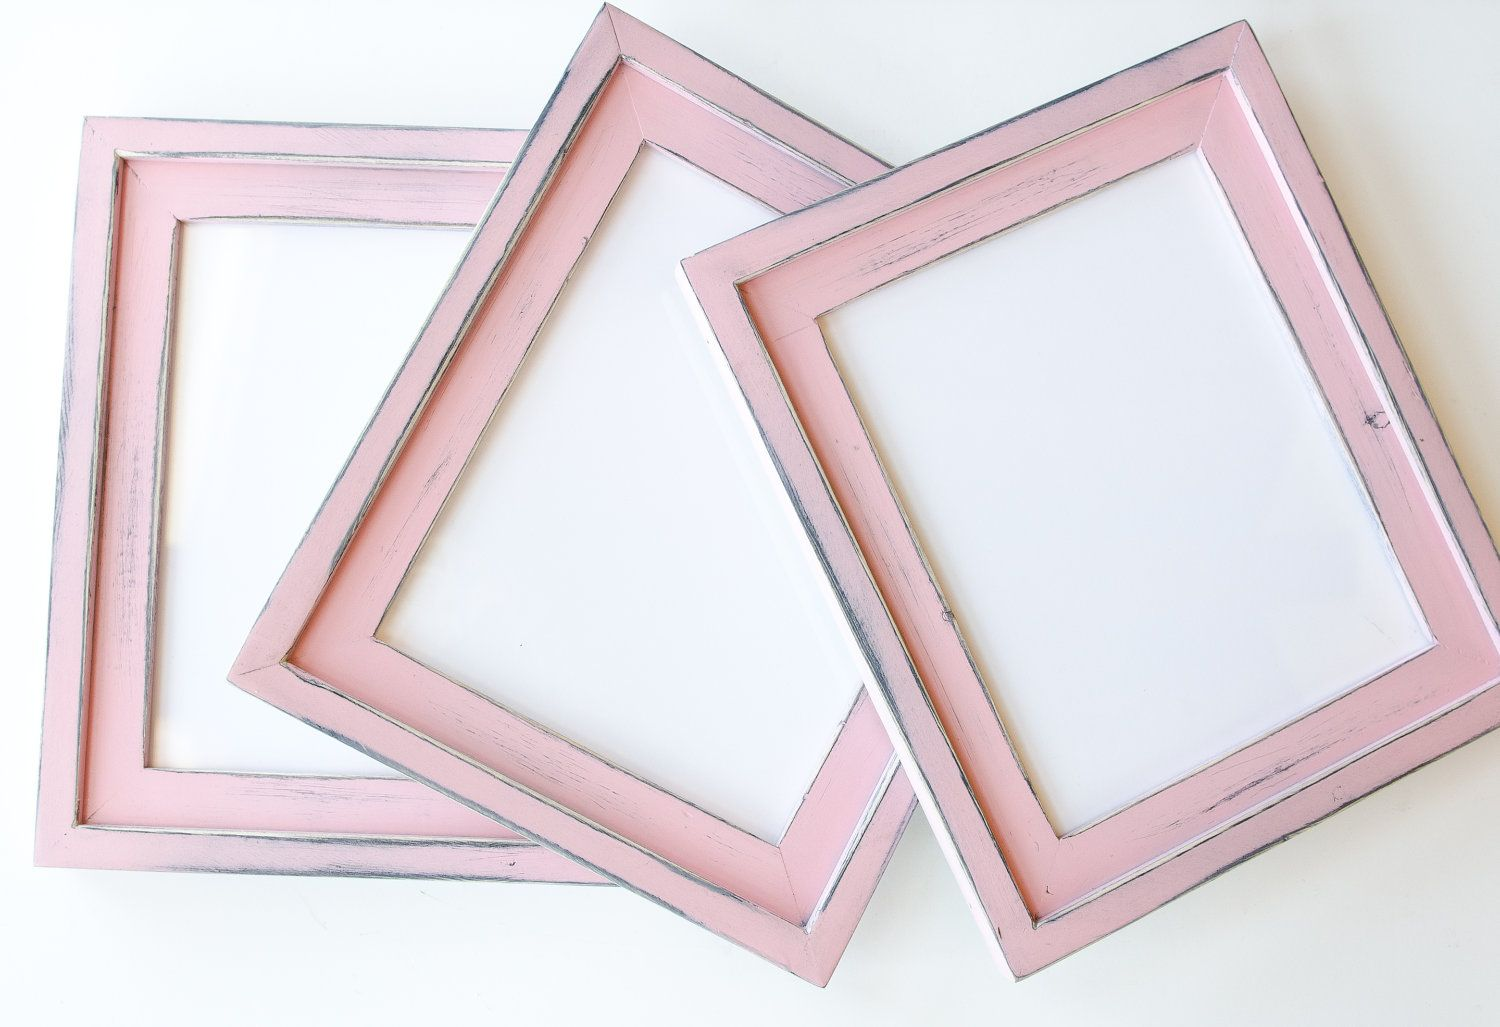 3 8x10 stacked pine distressed rustic picture frames pink 3 8x10 stacked pine distressed rustic picture frames pink great for any little jeuxipadfo Image collections